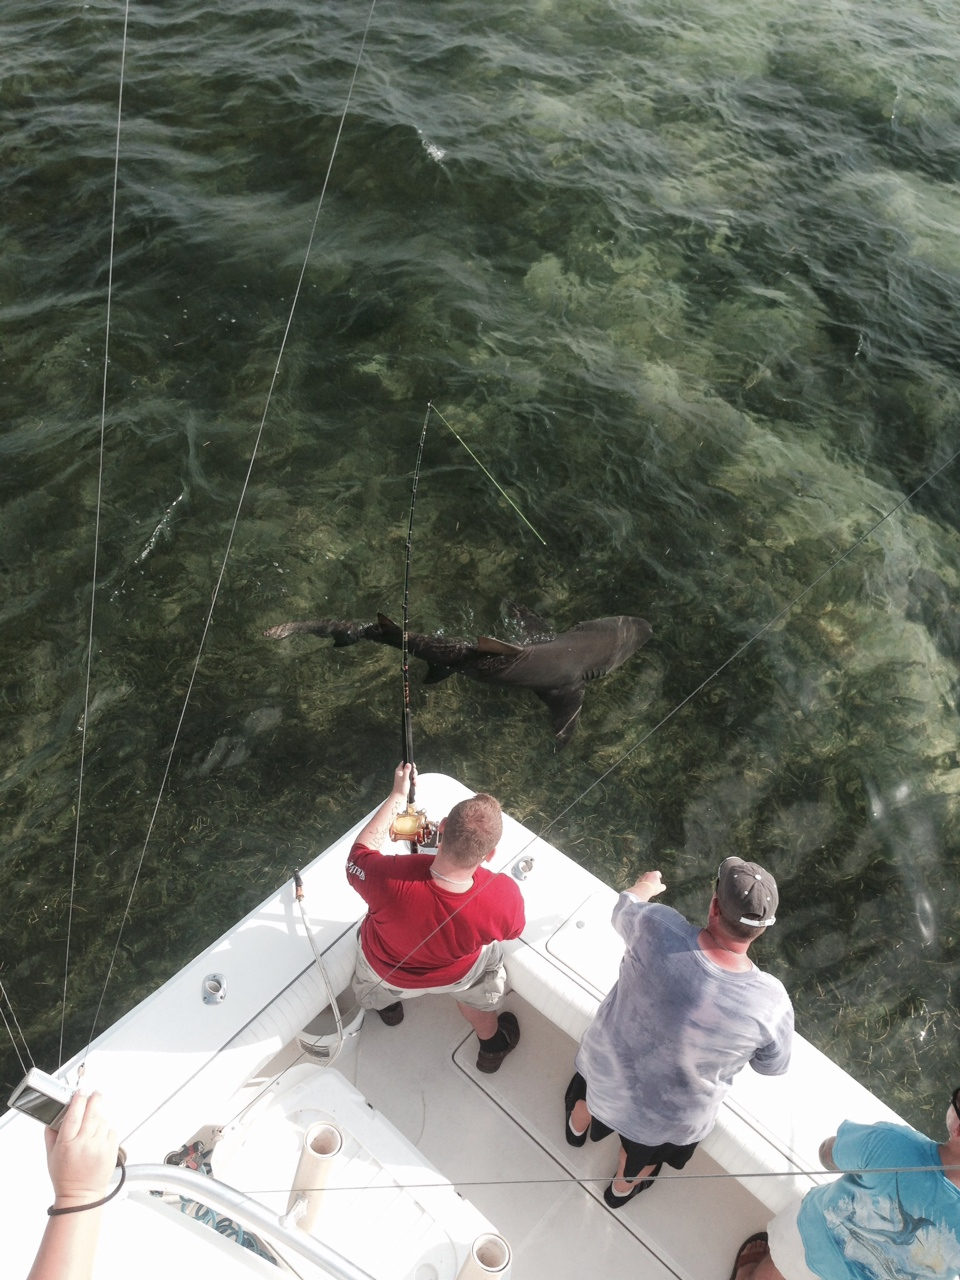 Shark fishing off Marathon in the Florida Keys.